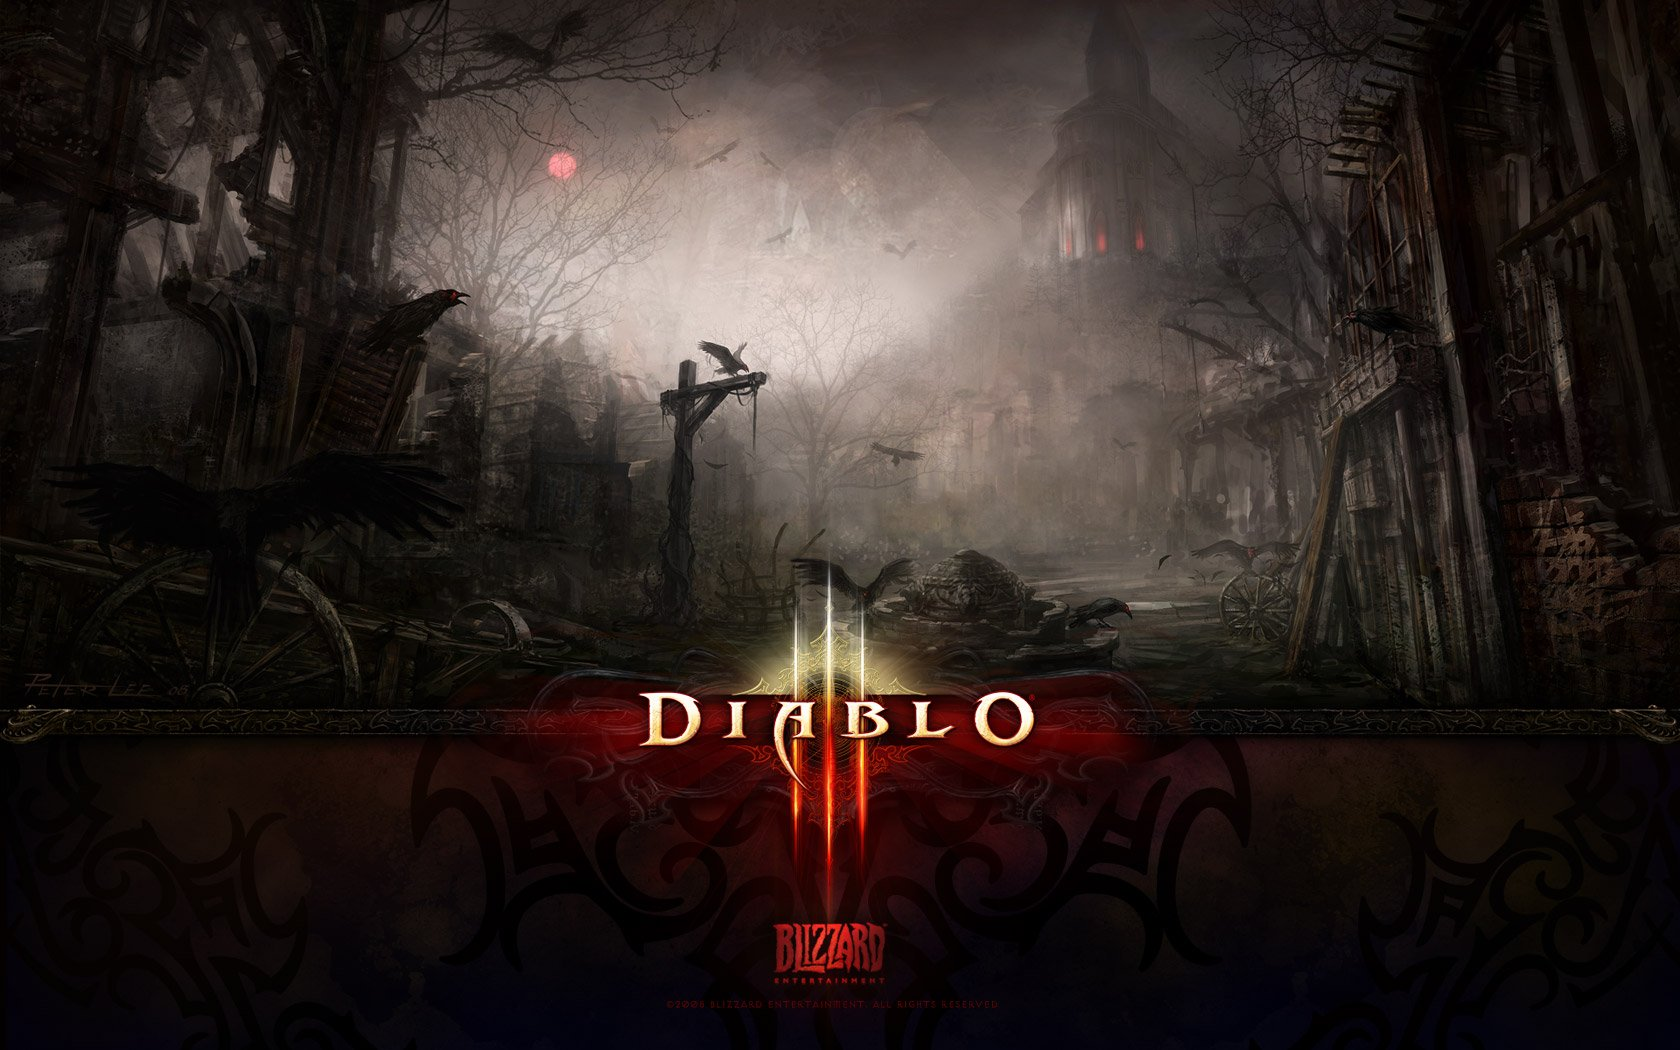 Here are the diablo 3 wallpapers in various desktop sizes from 1024